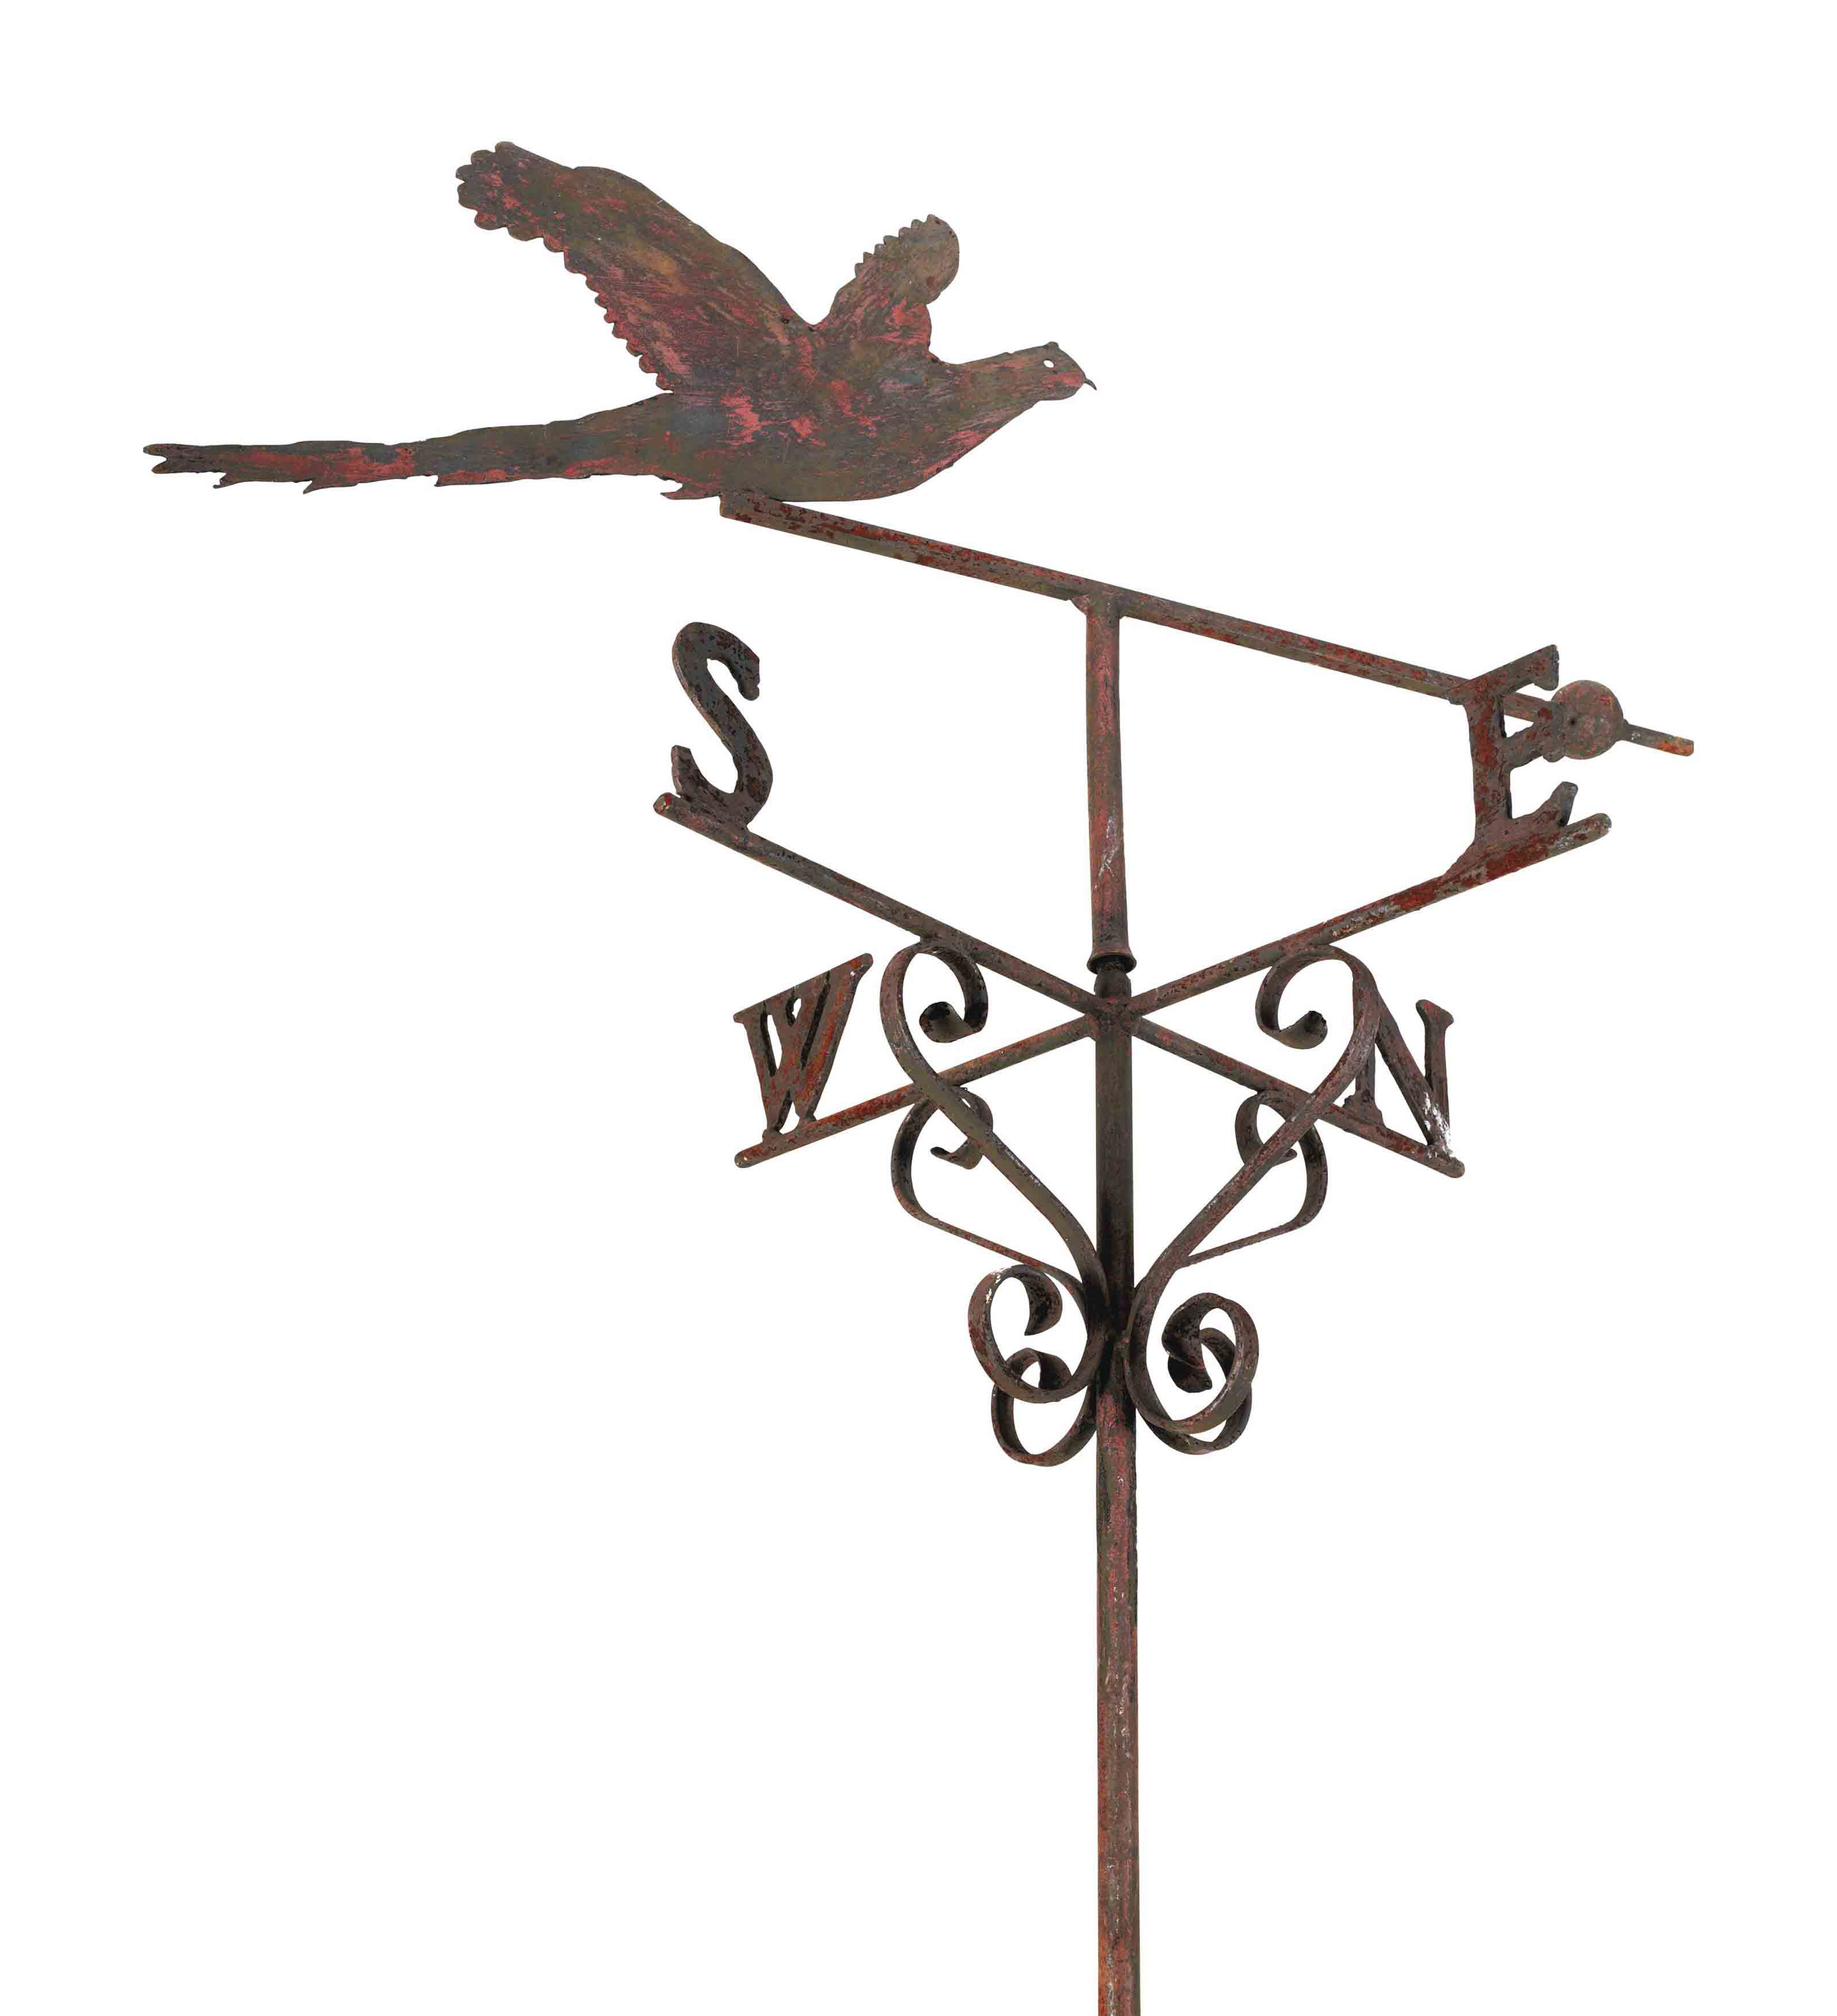 A WROUGHT-IRON WALL-MOUNTED WE